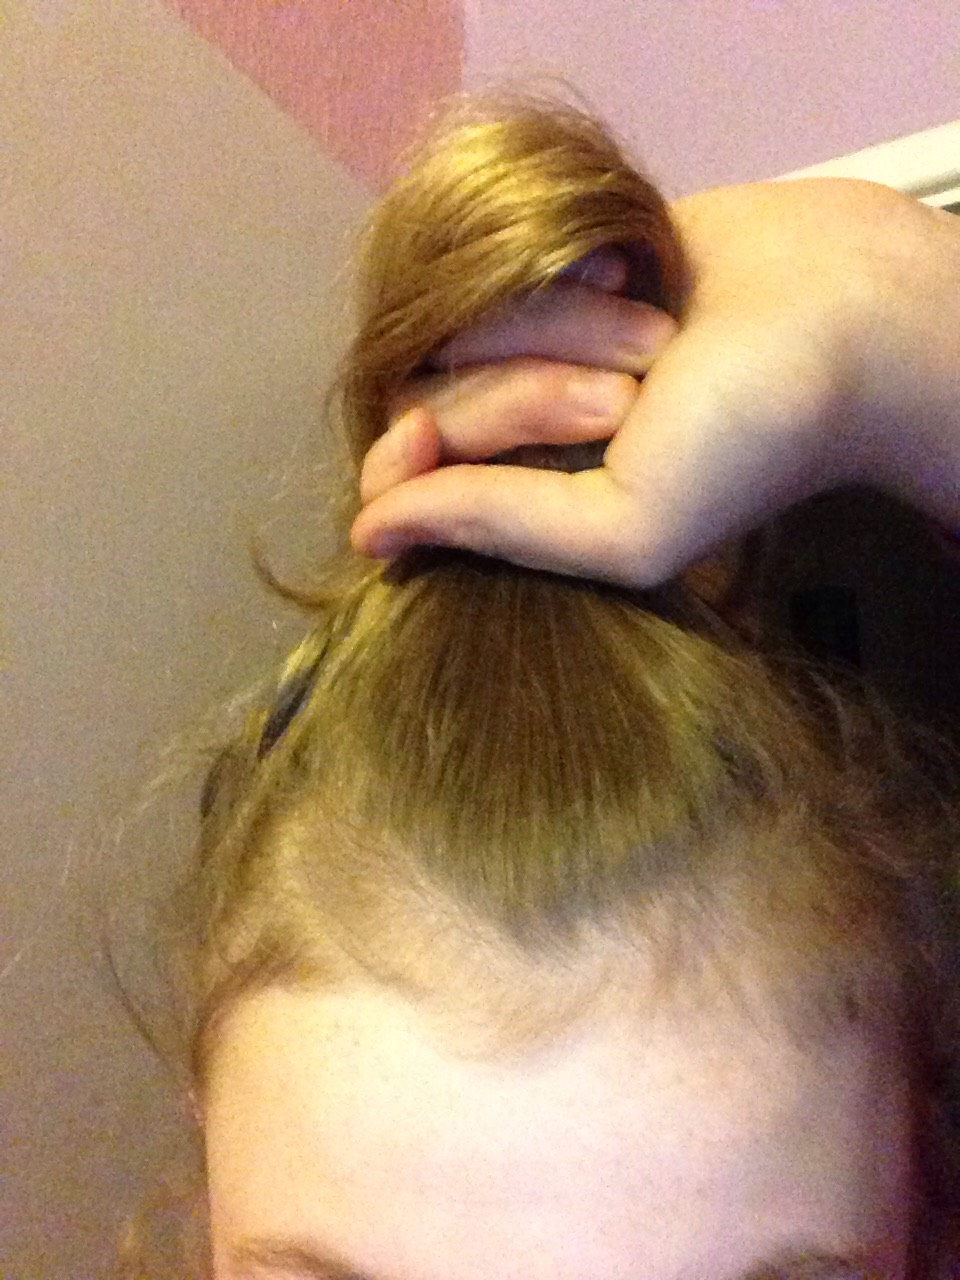 Put to the top of your head as if you are putting in a really high pony tail in your hair